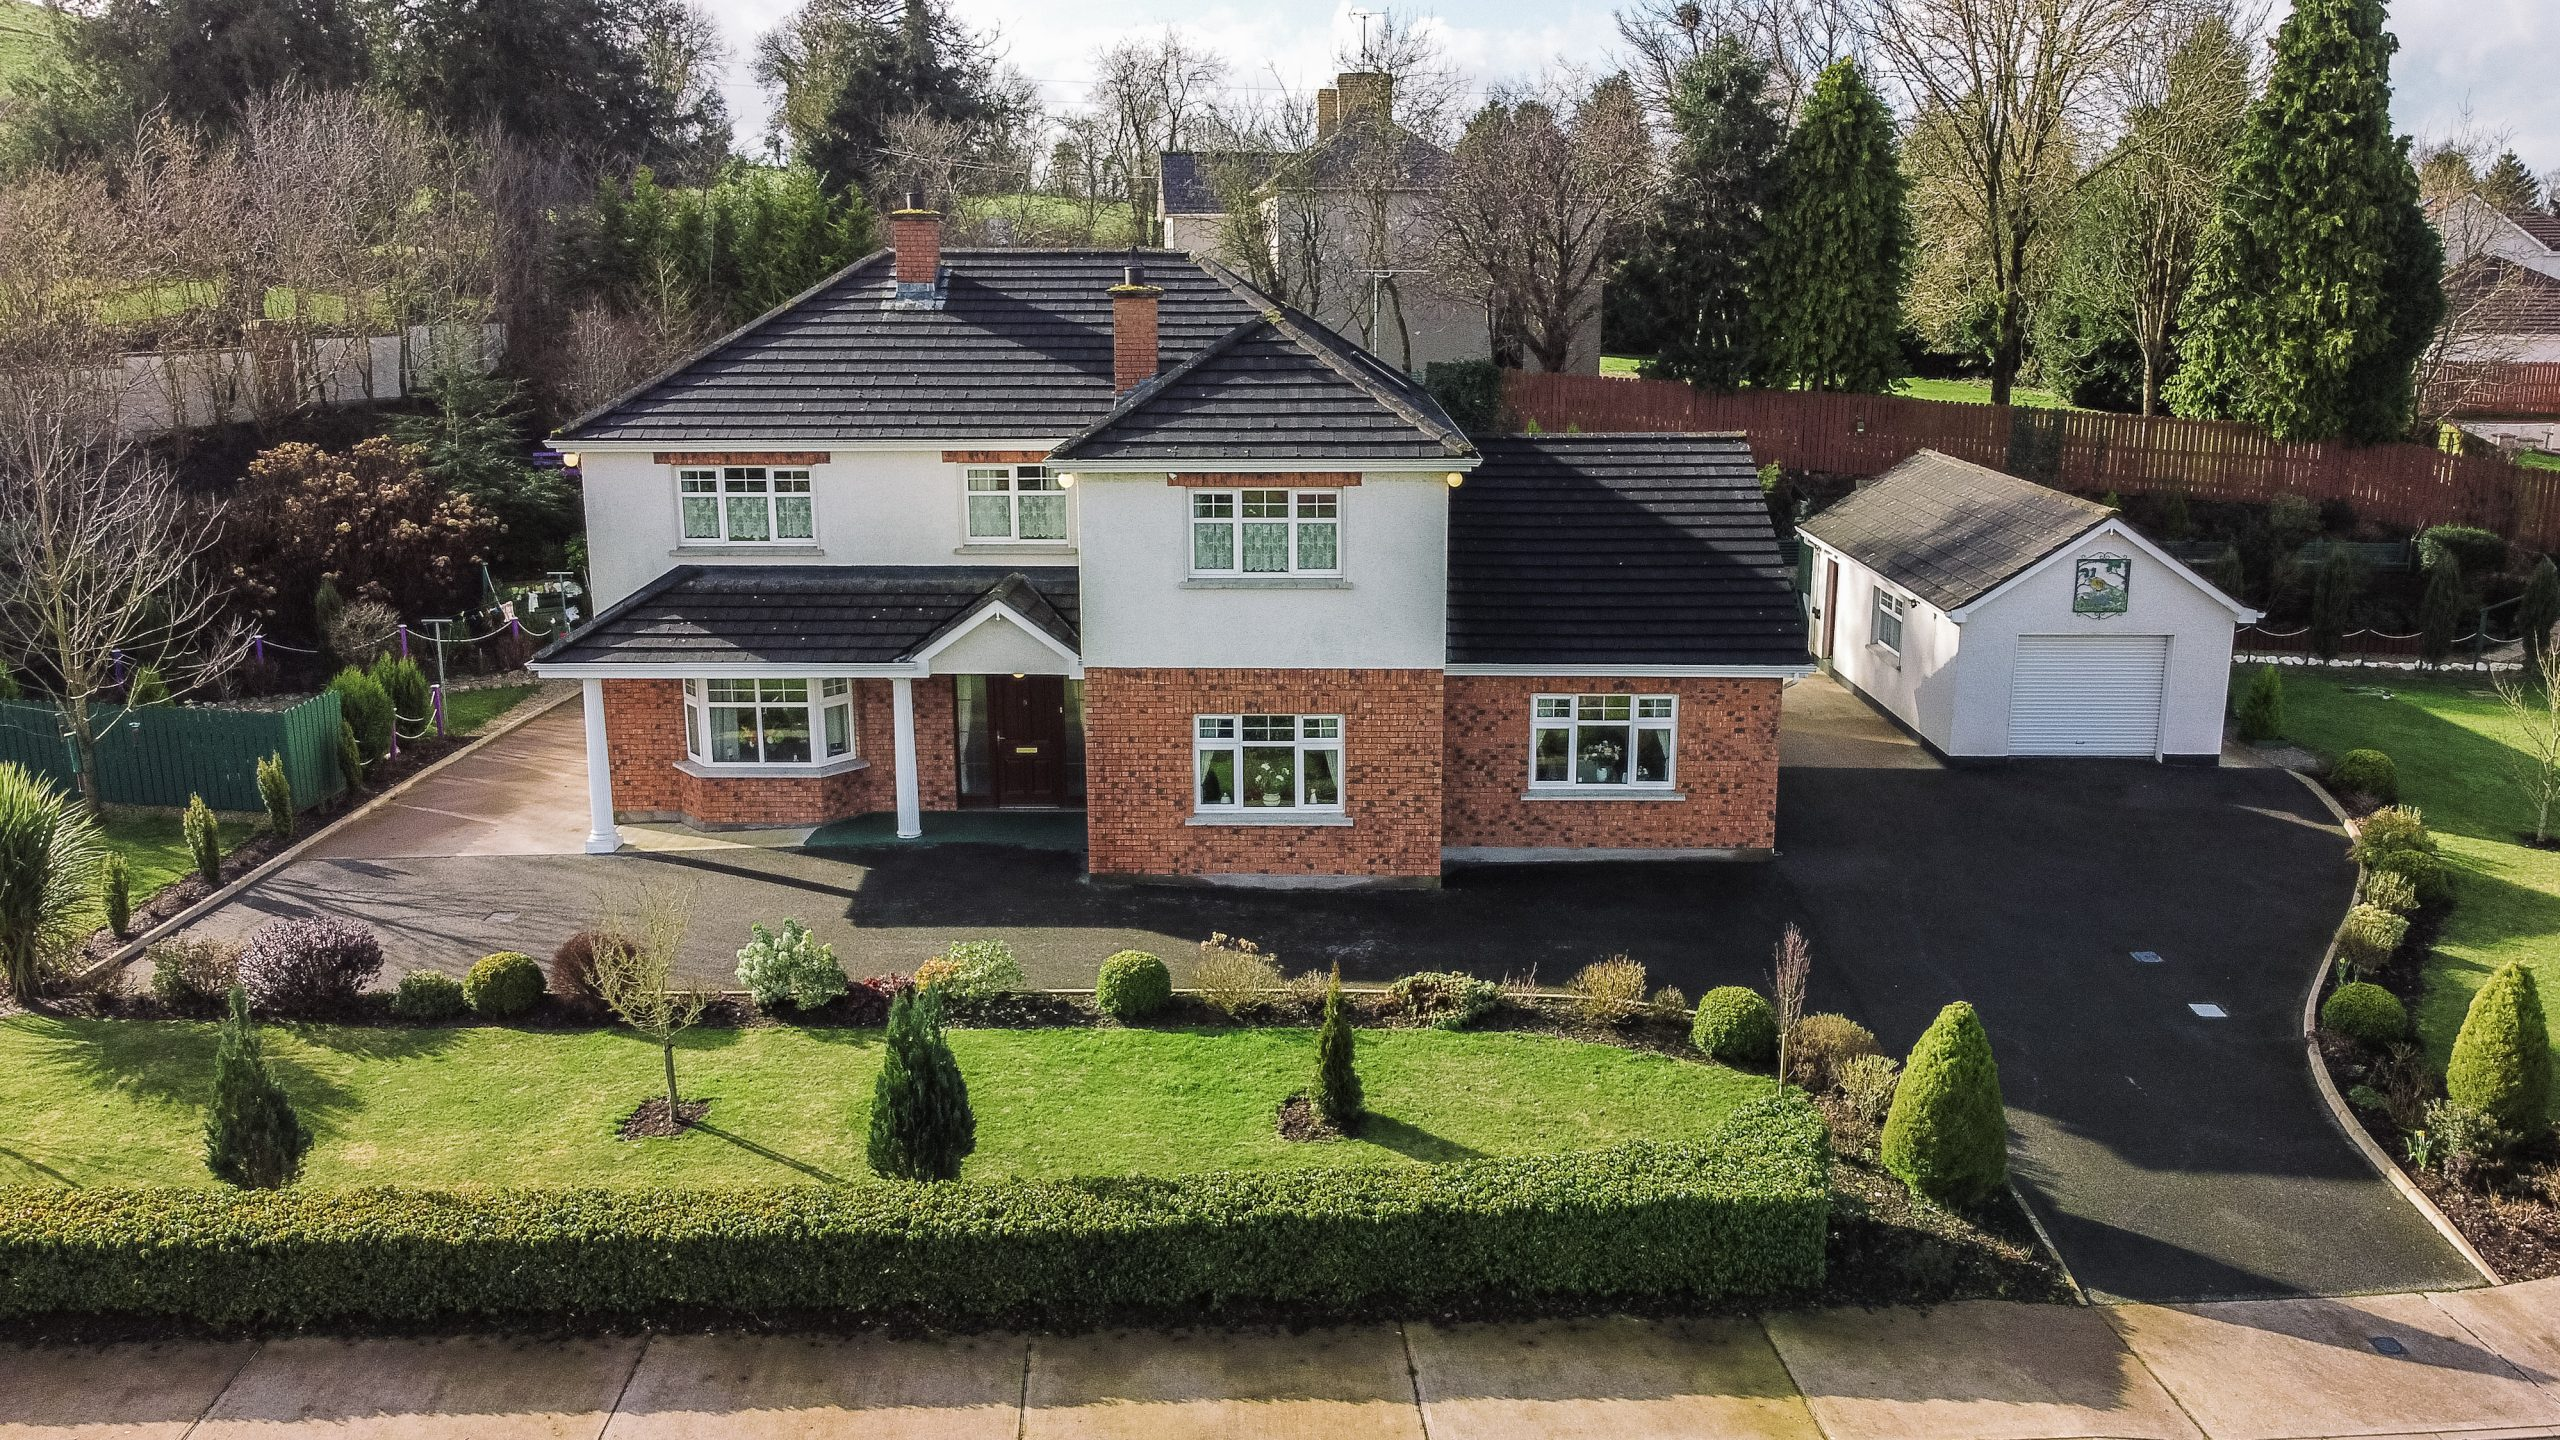 NO. 9 LAKEVIEW, BALLYBAY ROAD, COOTEHILL, CO. CAVAN. H16 XW18